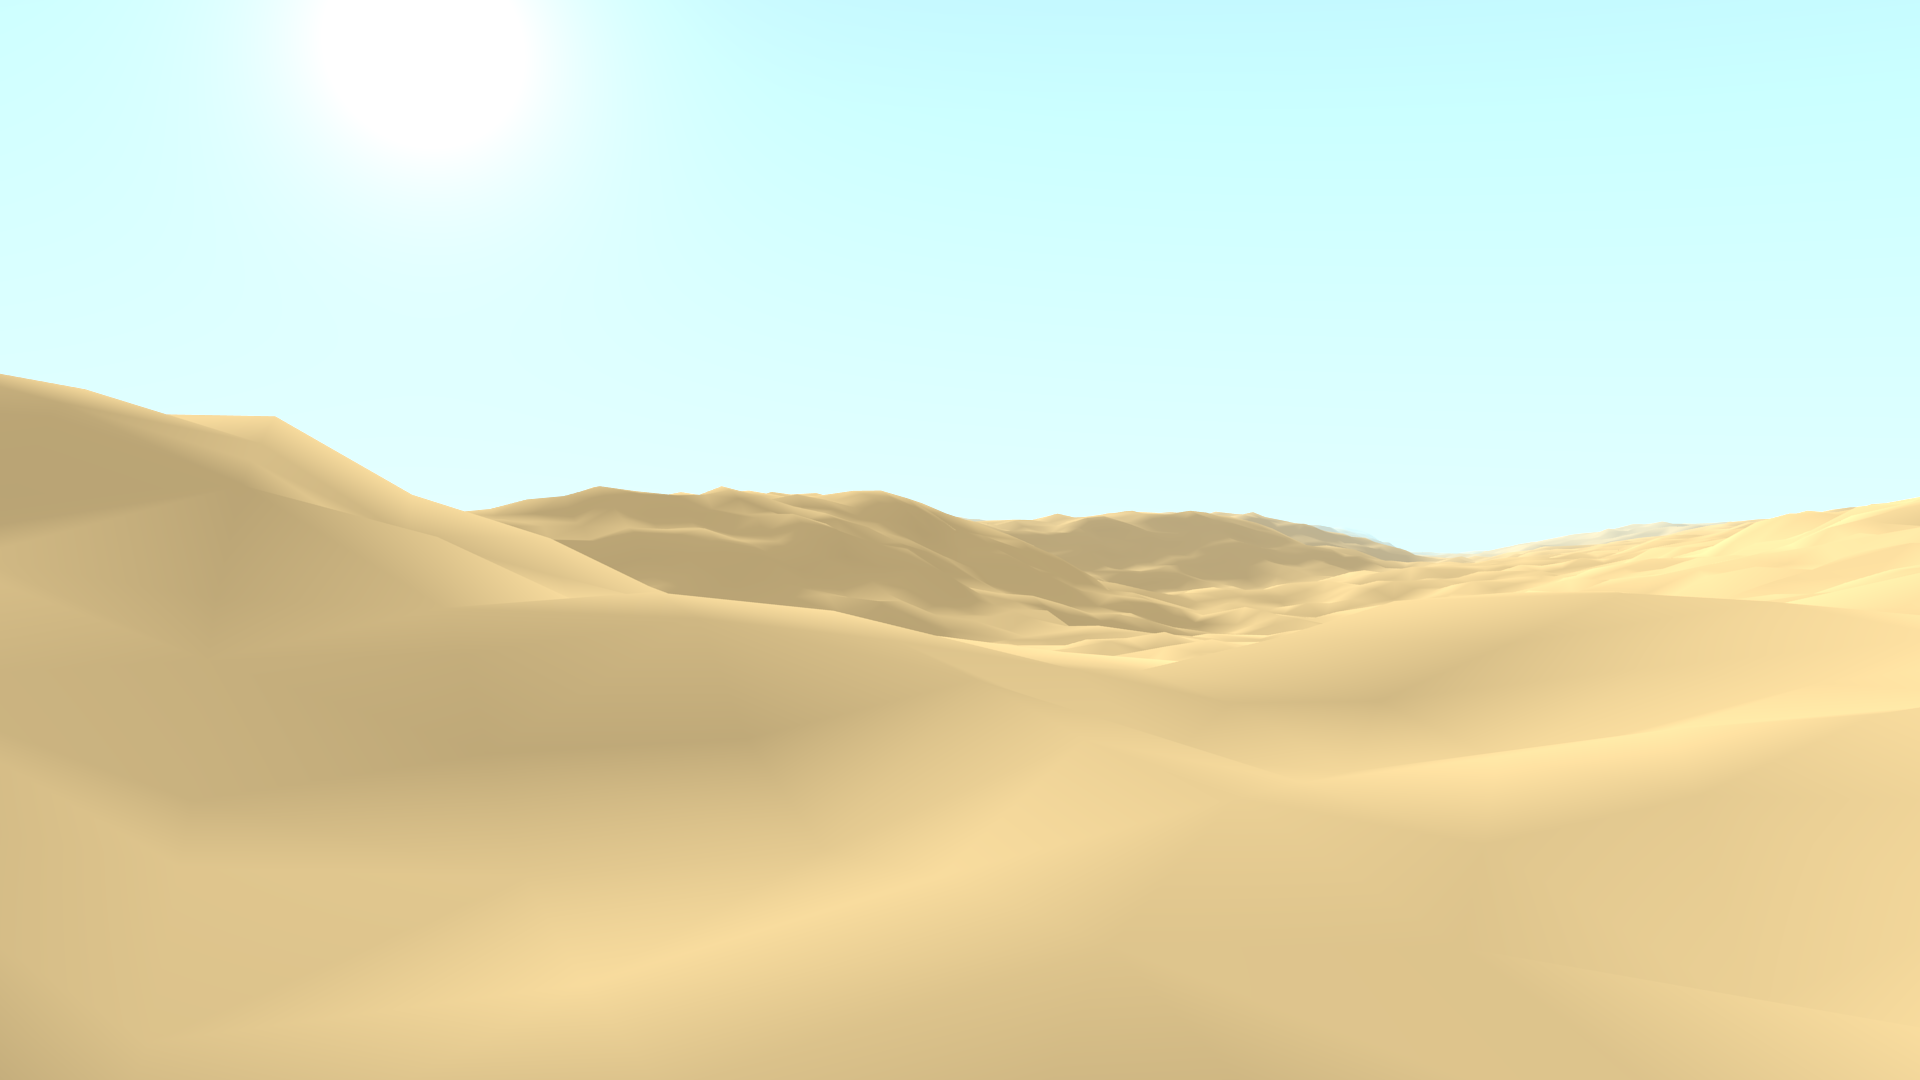 blender output image size scale background image to fit